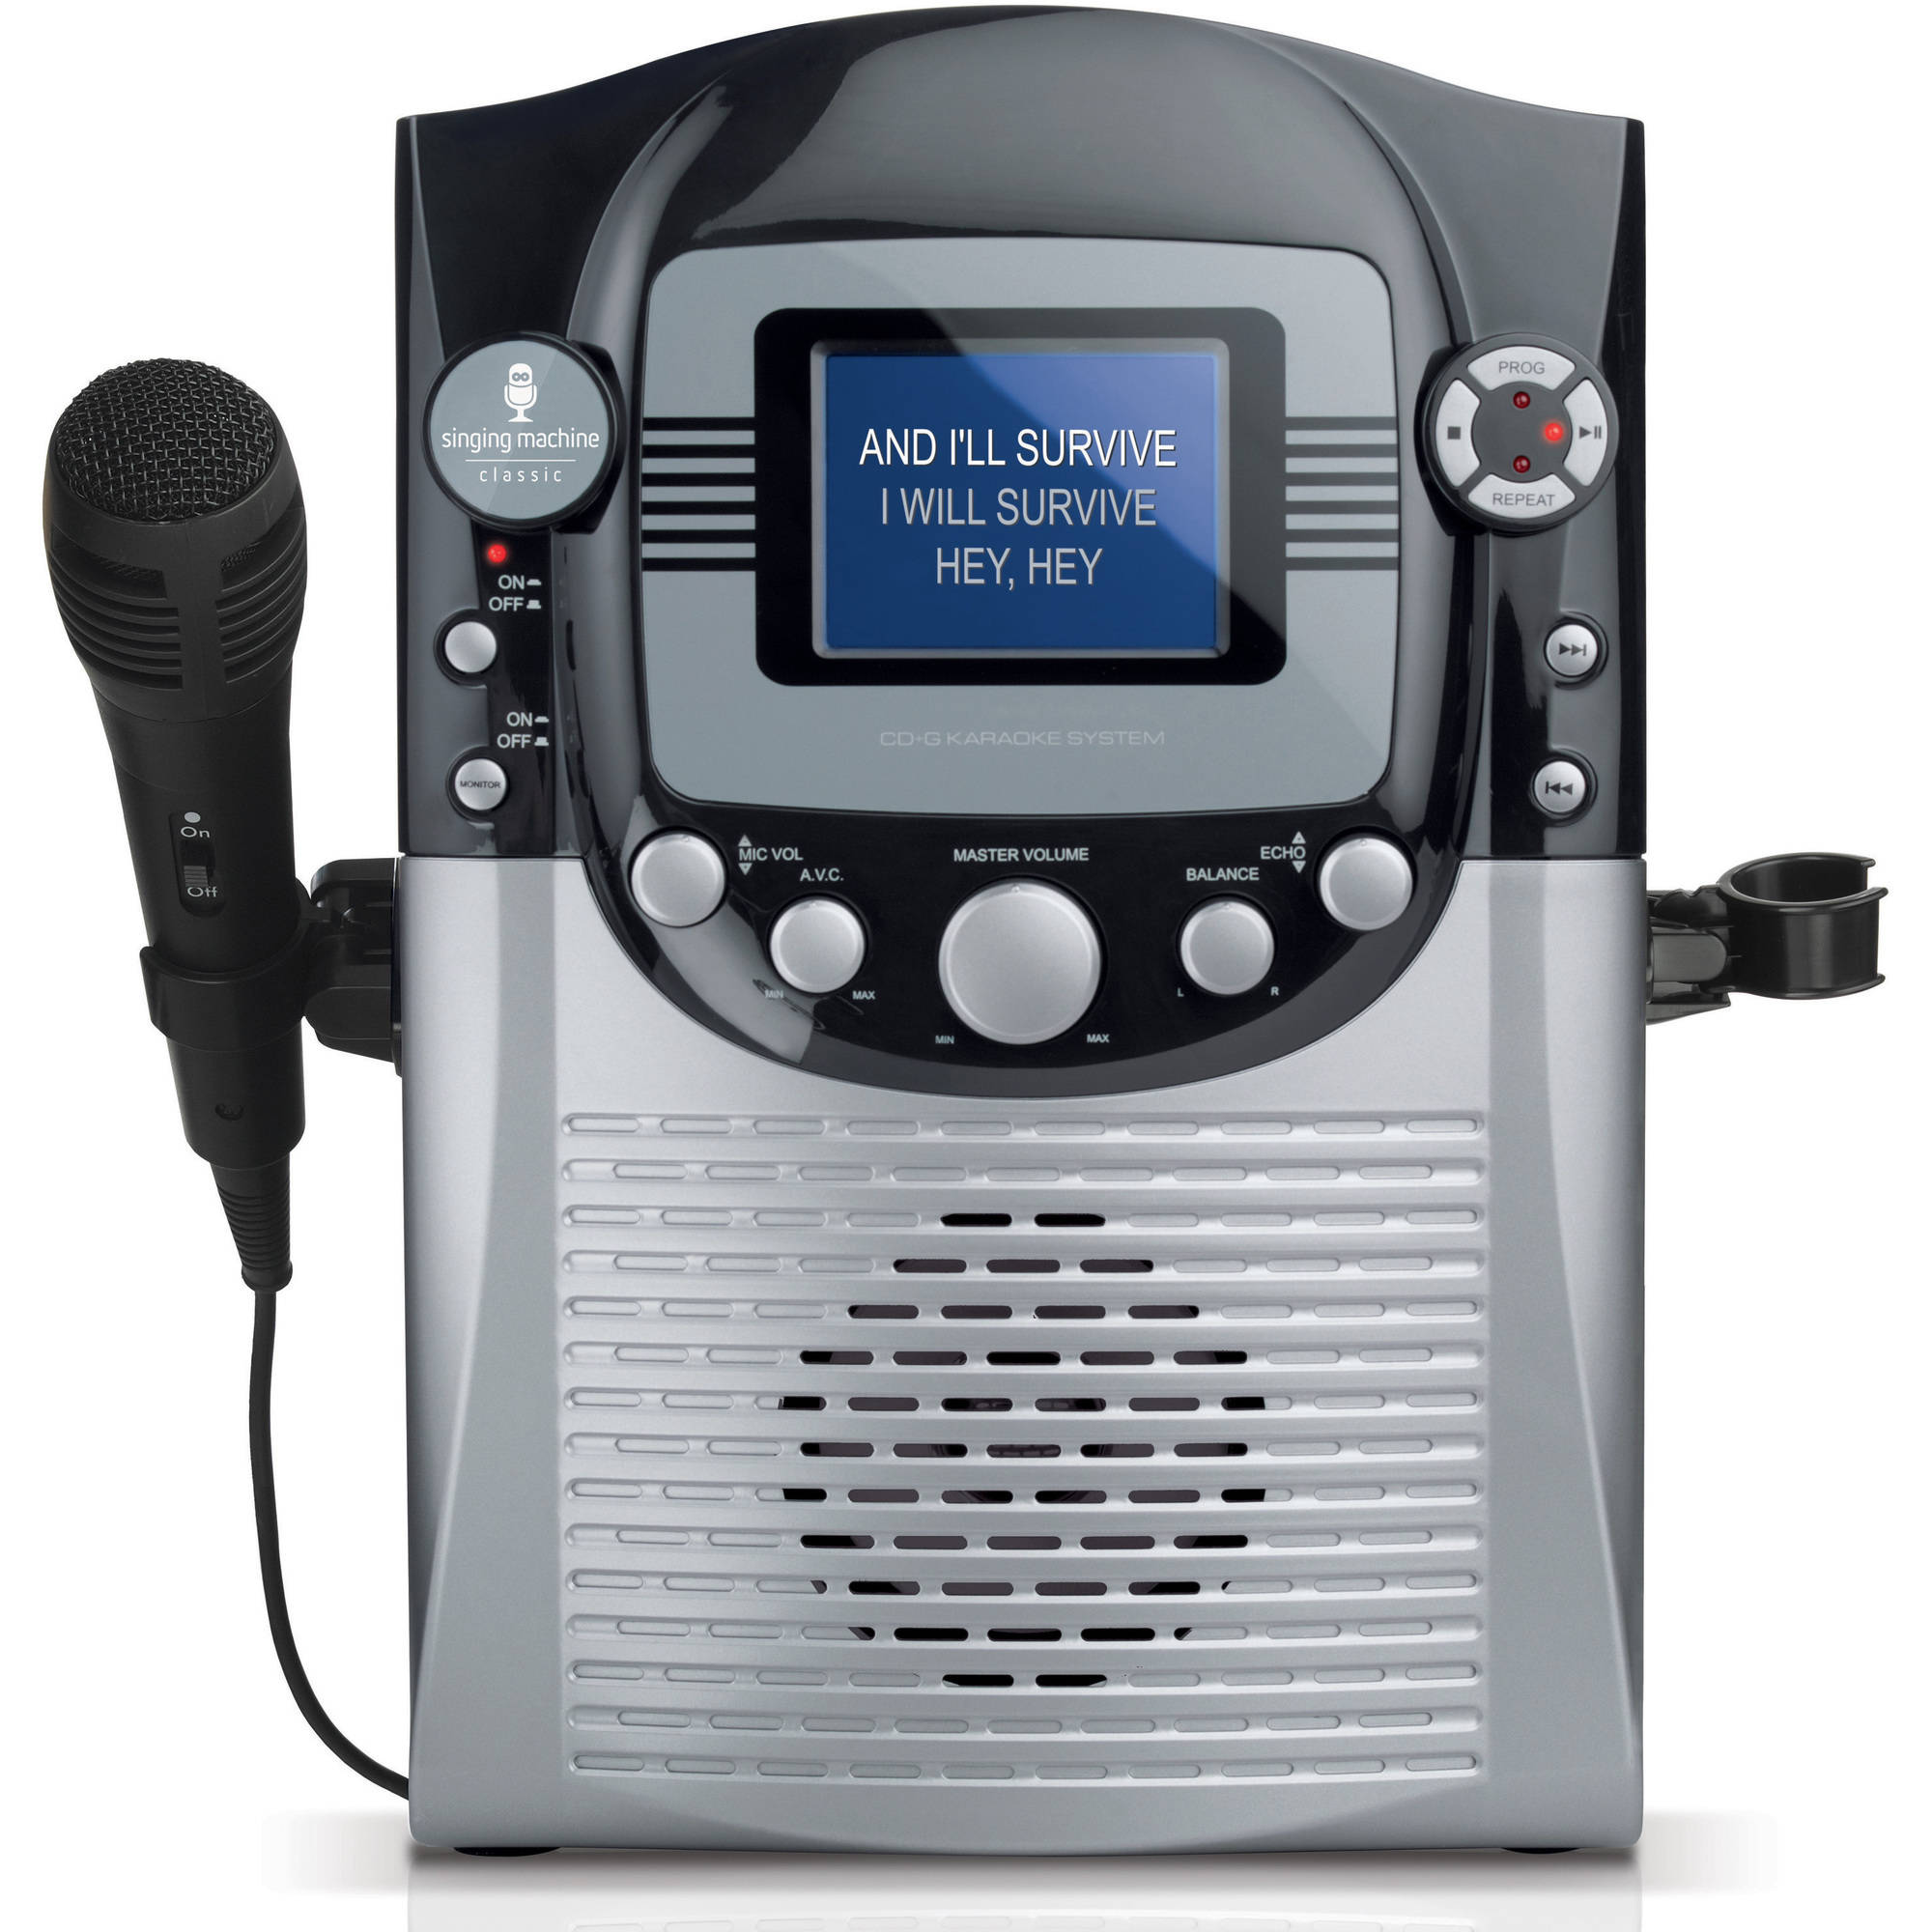 "Singing Machine STVG359 CD G Karaoke System with 3.5"" CRT Color Monitor and Microphone"